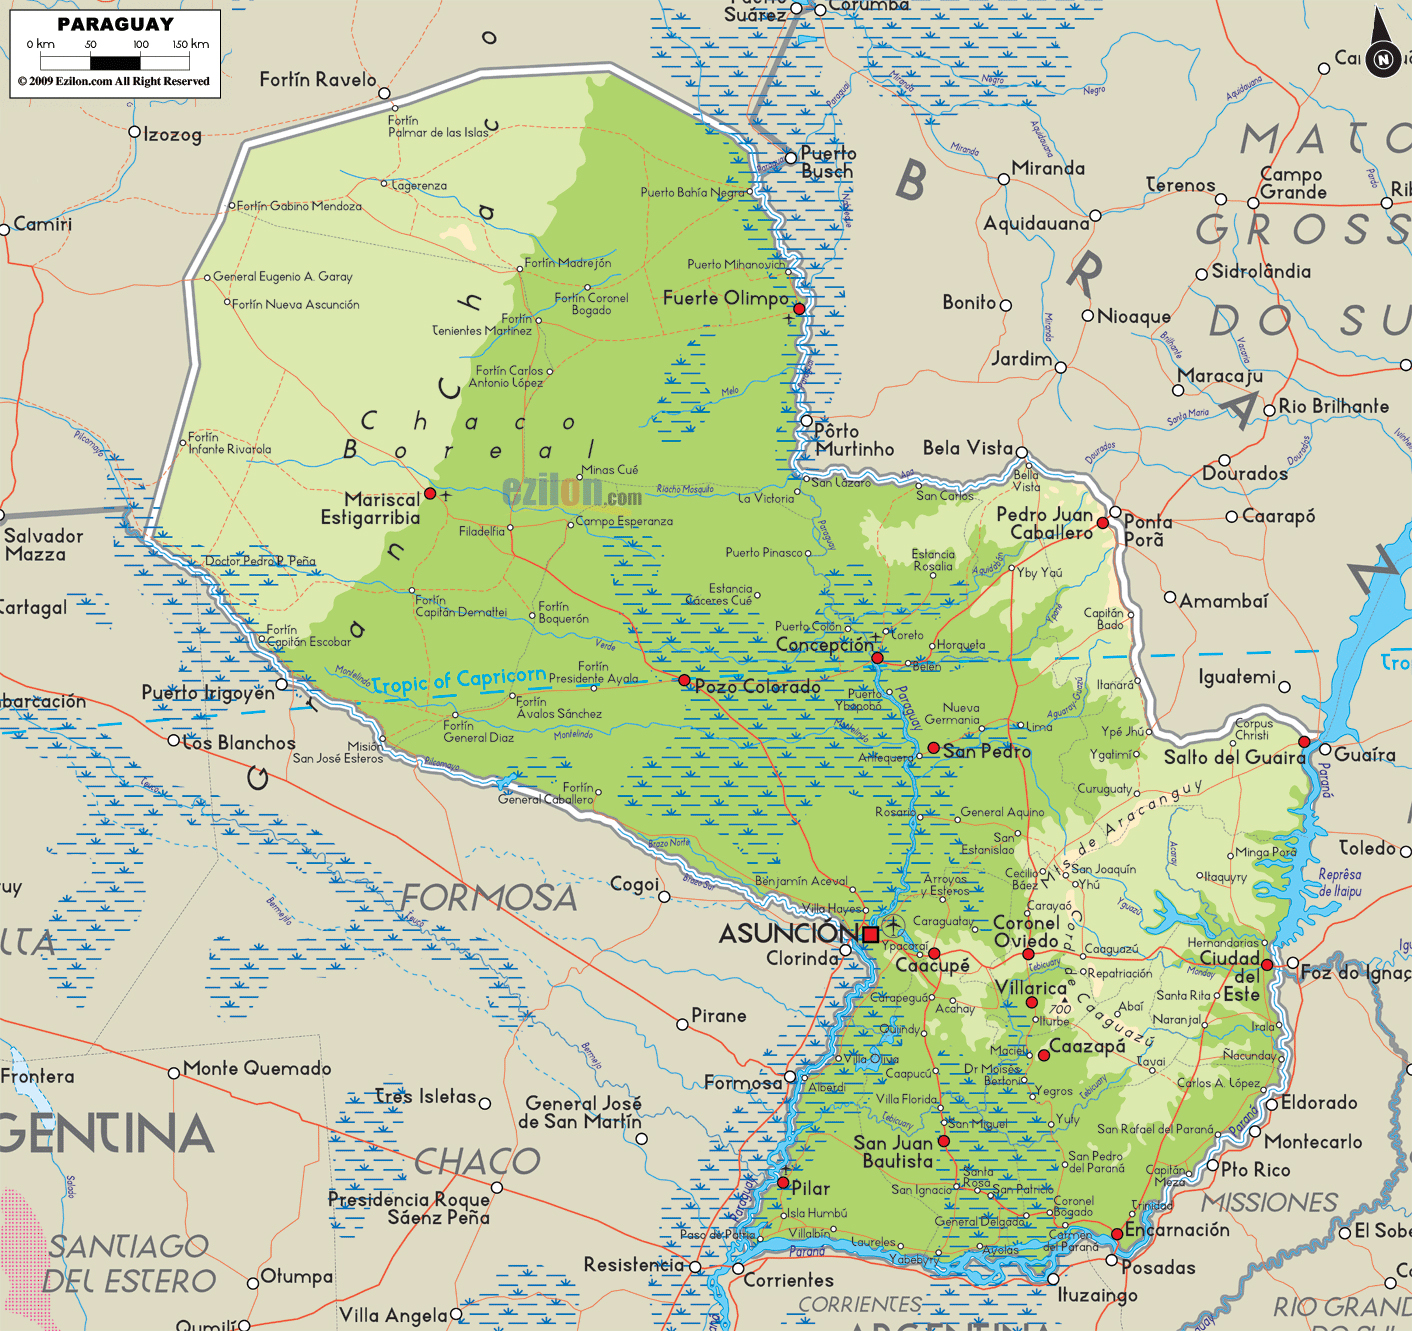 Maps of Paraguay | Map Library | Maps of the World